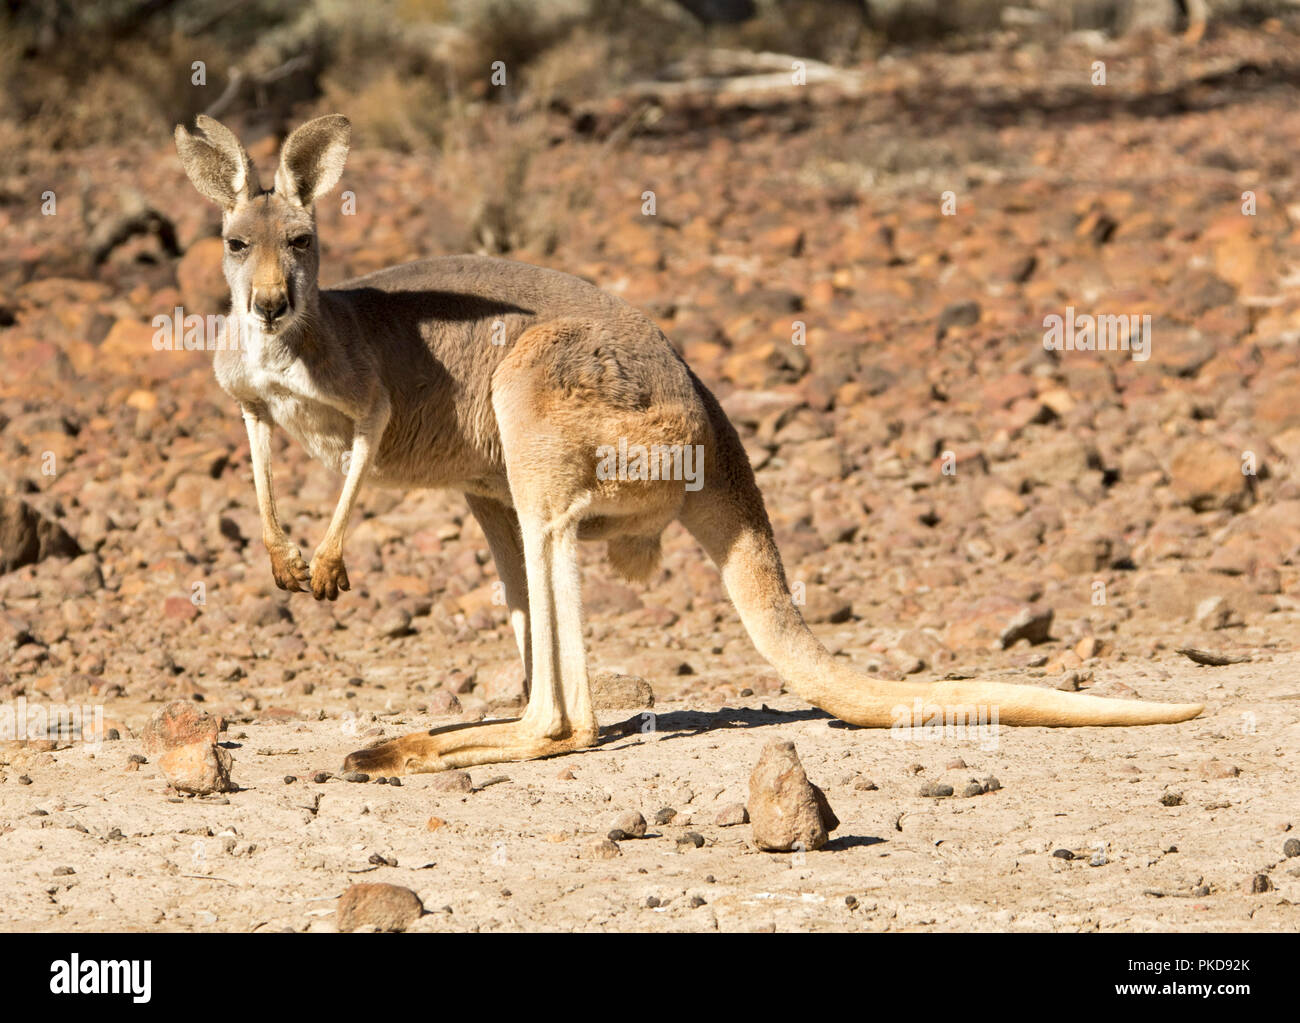 Red kangaroo, Macropus rufus, on barren red soul of Australian outback during drought, staring at camera, at Culgoa Floodplains National Park, Qld - Stock Image